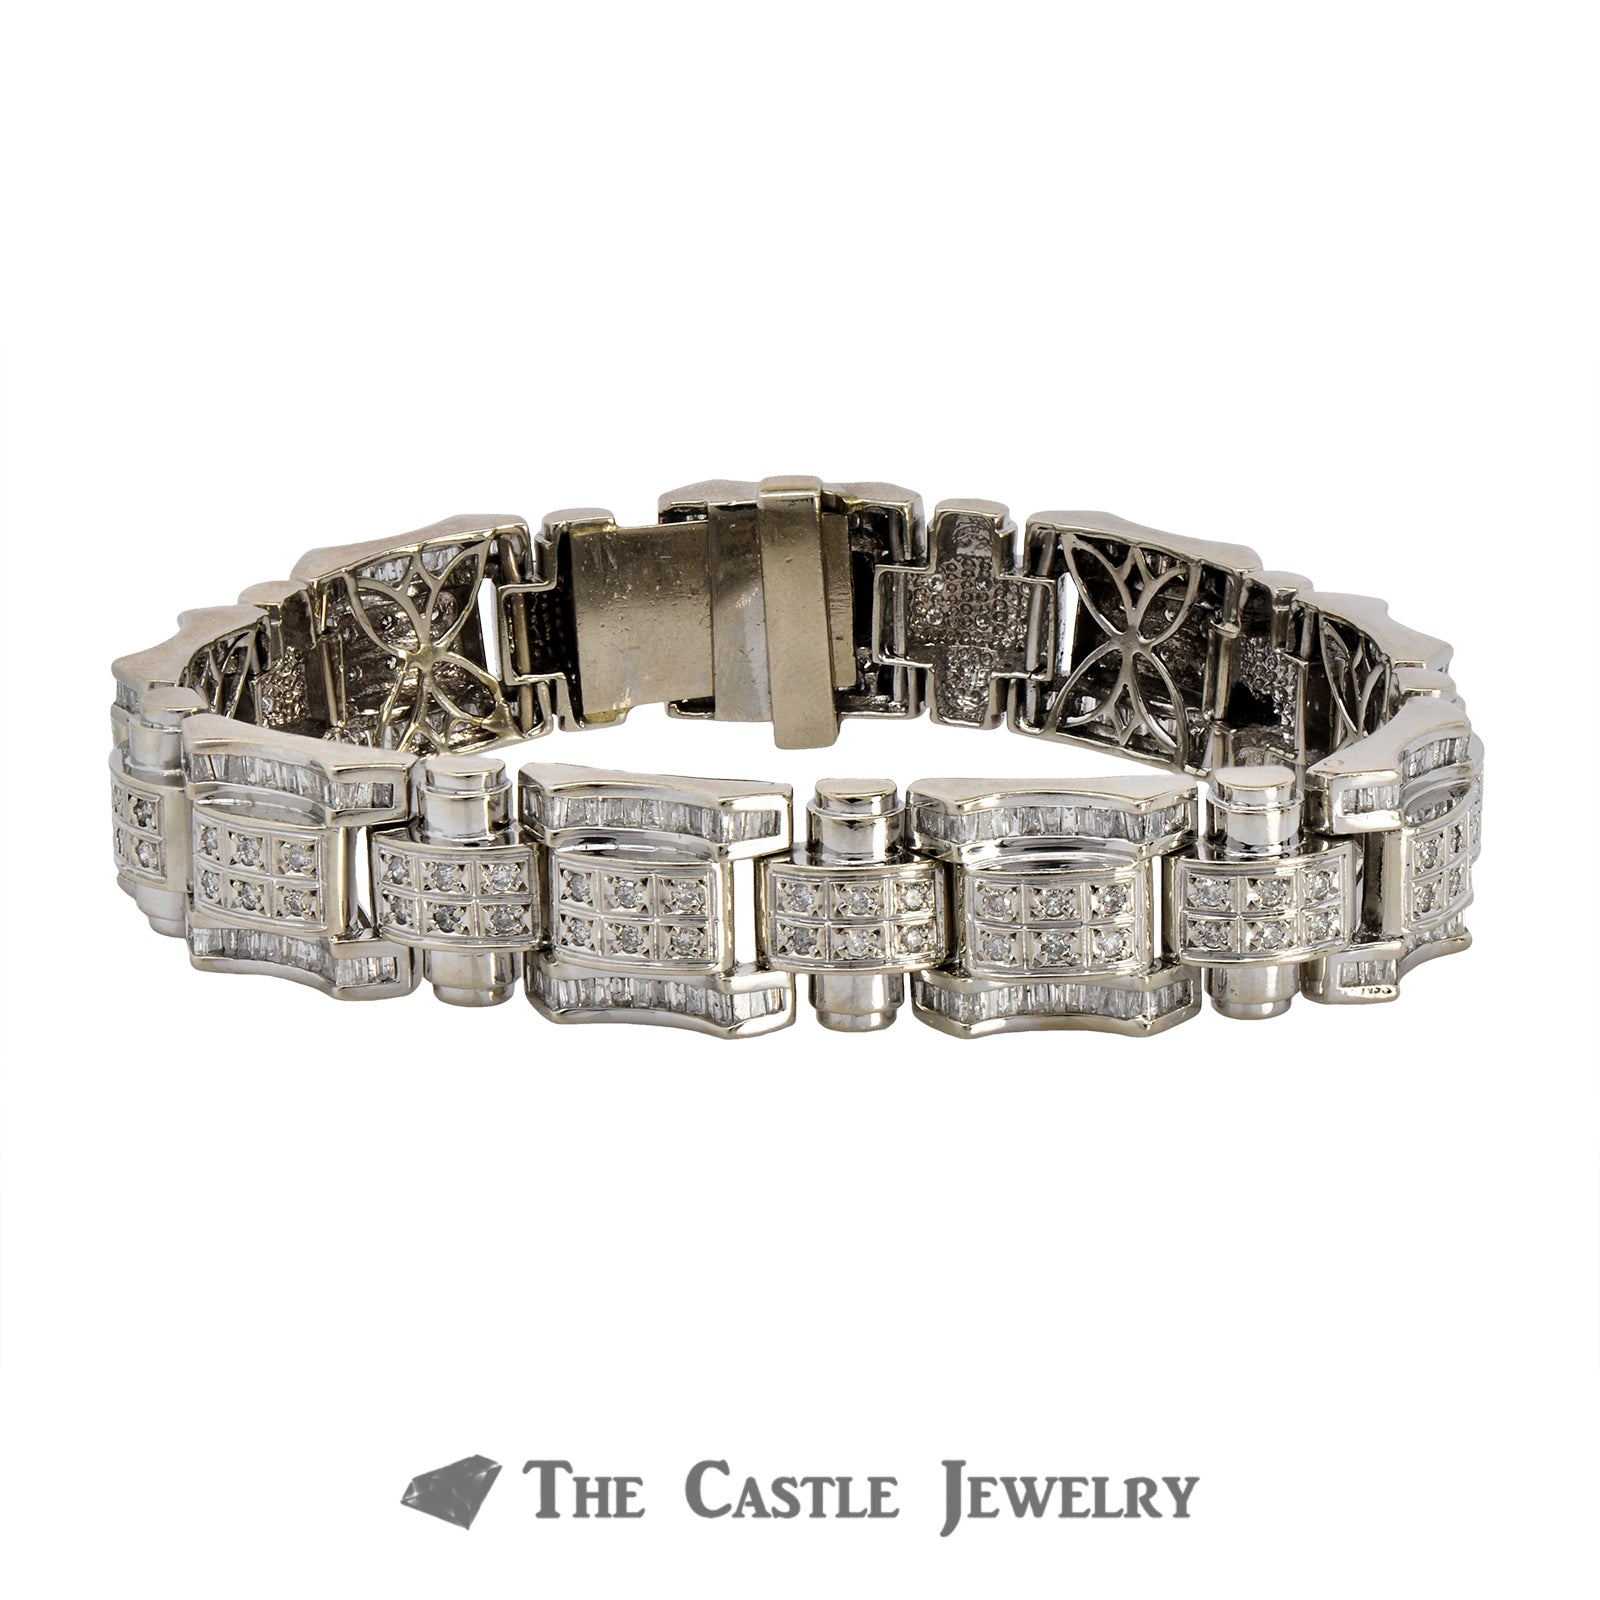 Men's Bracelet Crafted in 14K White Gold with Links Covered in Diamonds